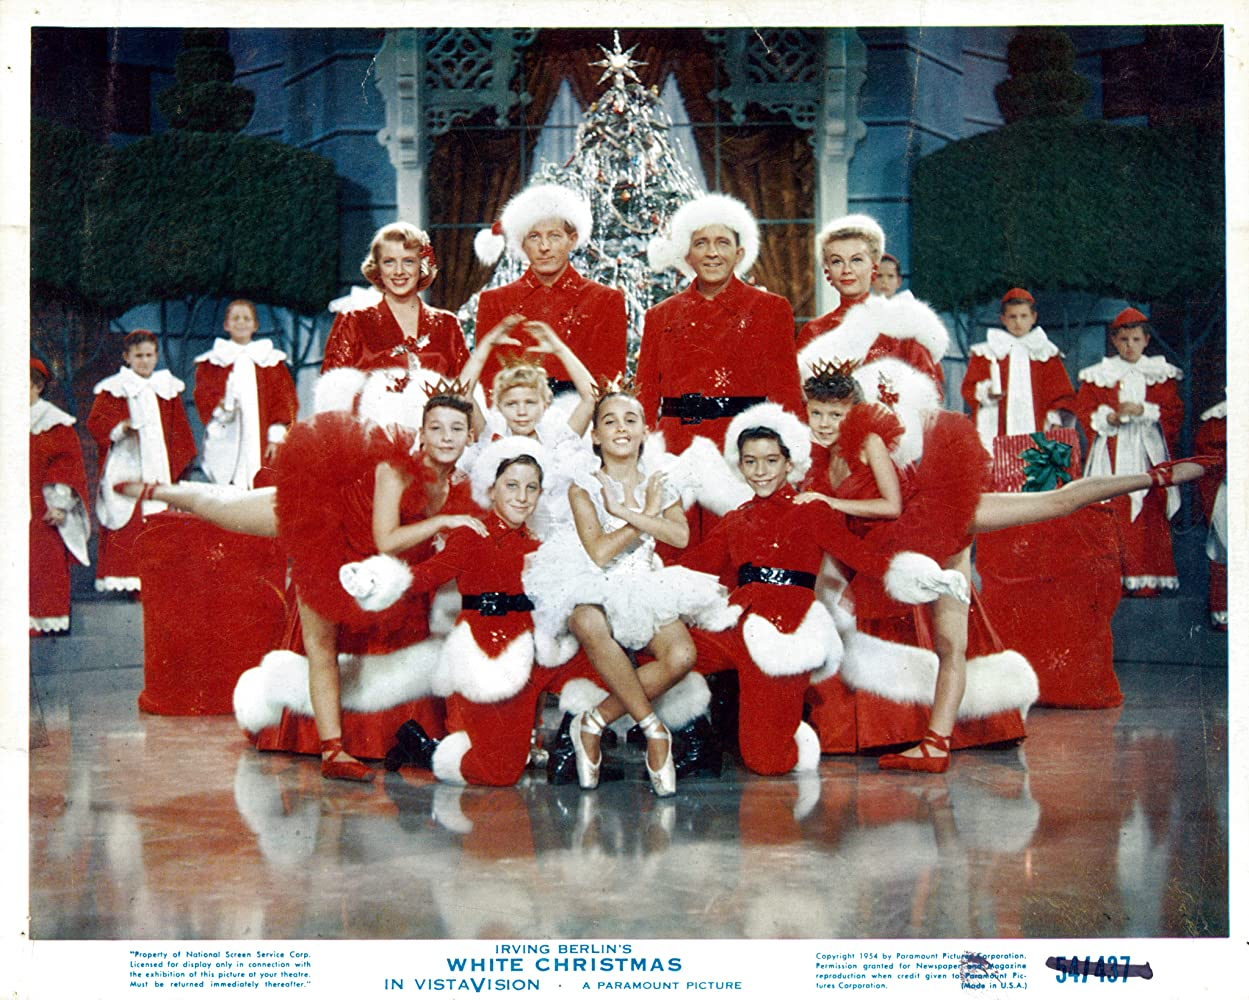 Bing Crosby, Danny Kaye, Rosemary Clooney, and Vera-Ellen in White Christmas (1954)